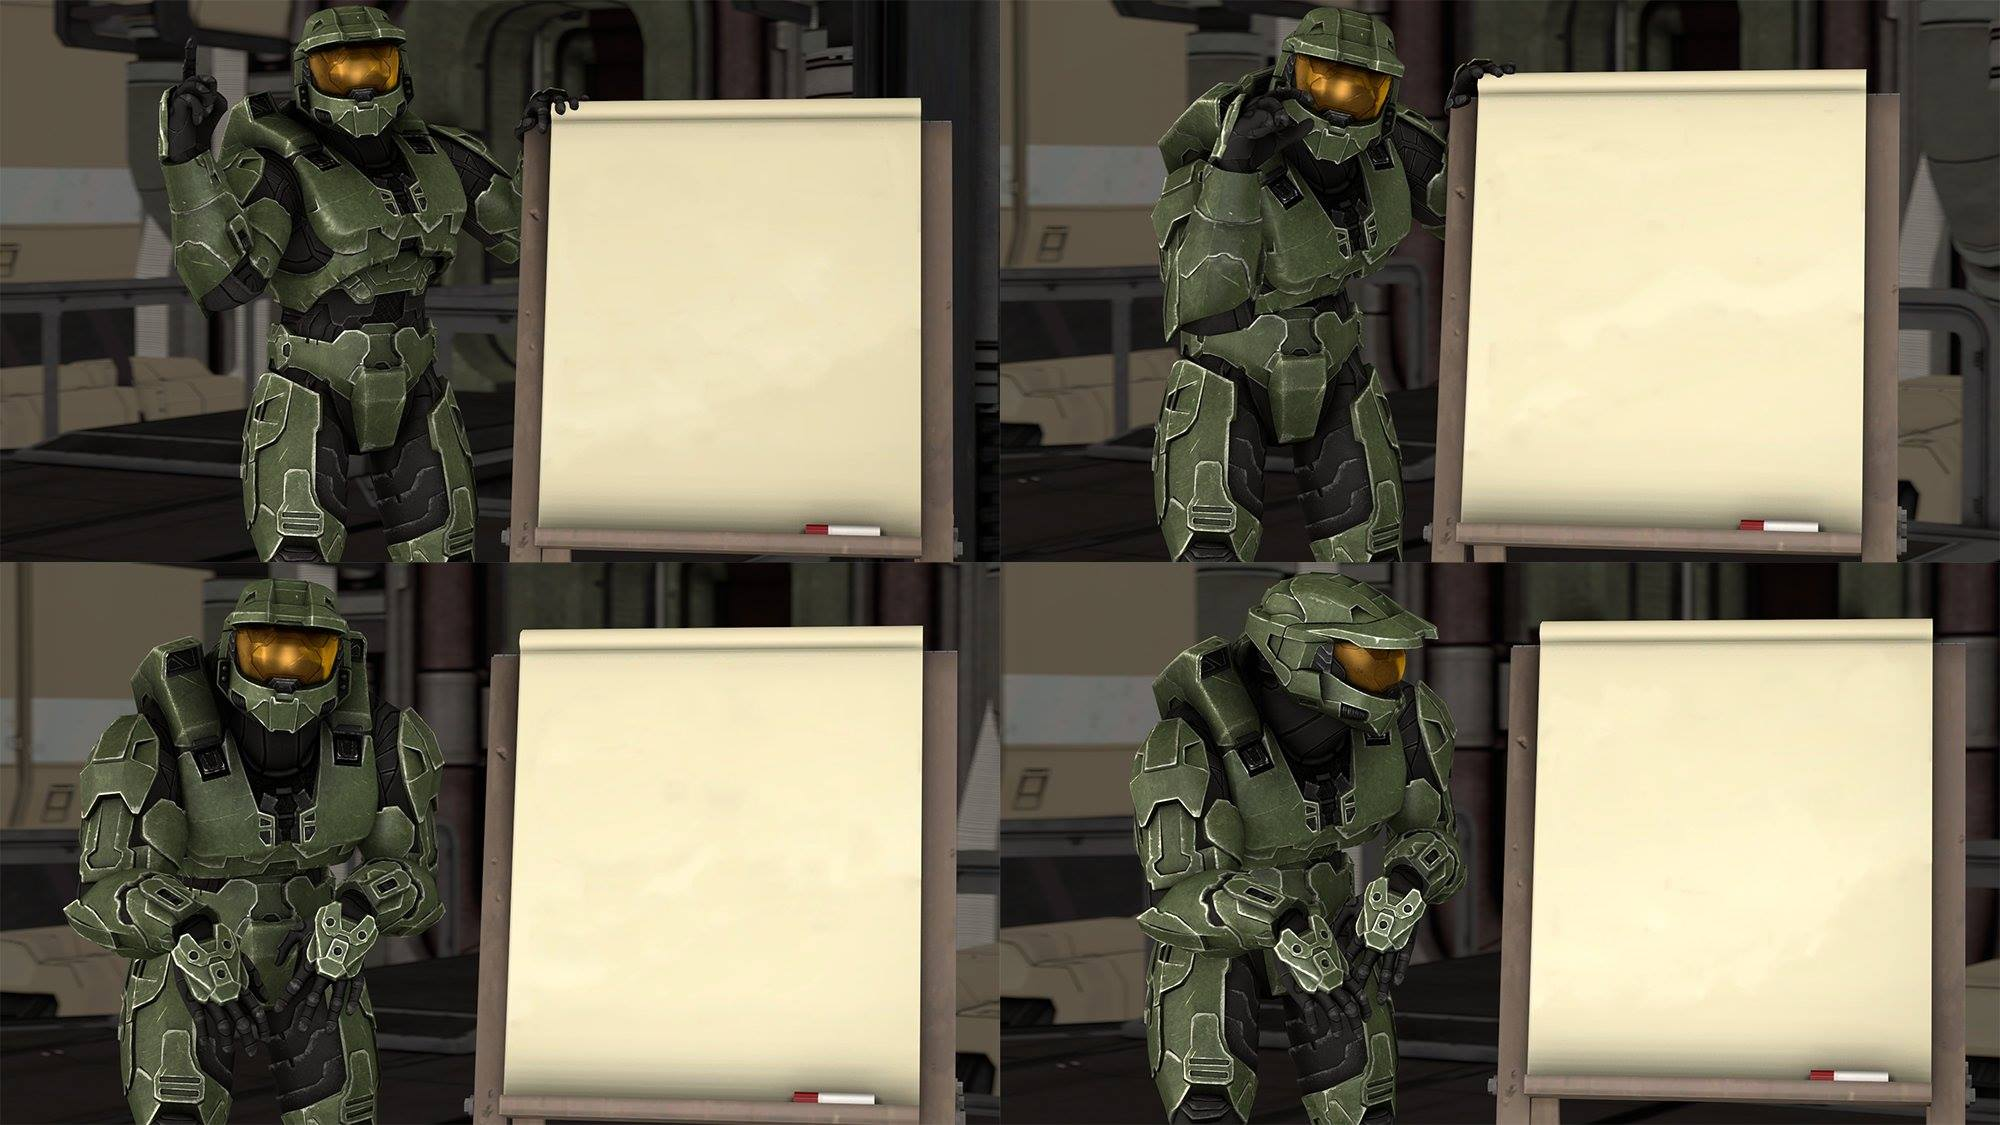 Master Chief S Plan Despicable Me Halo Blank Template